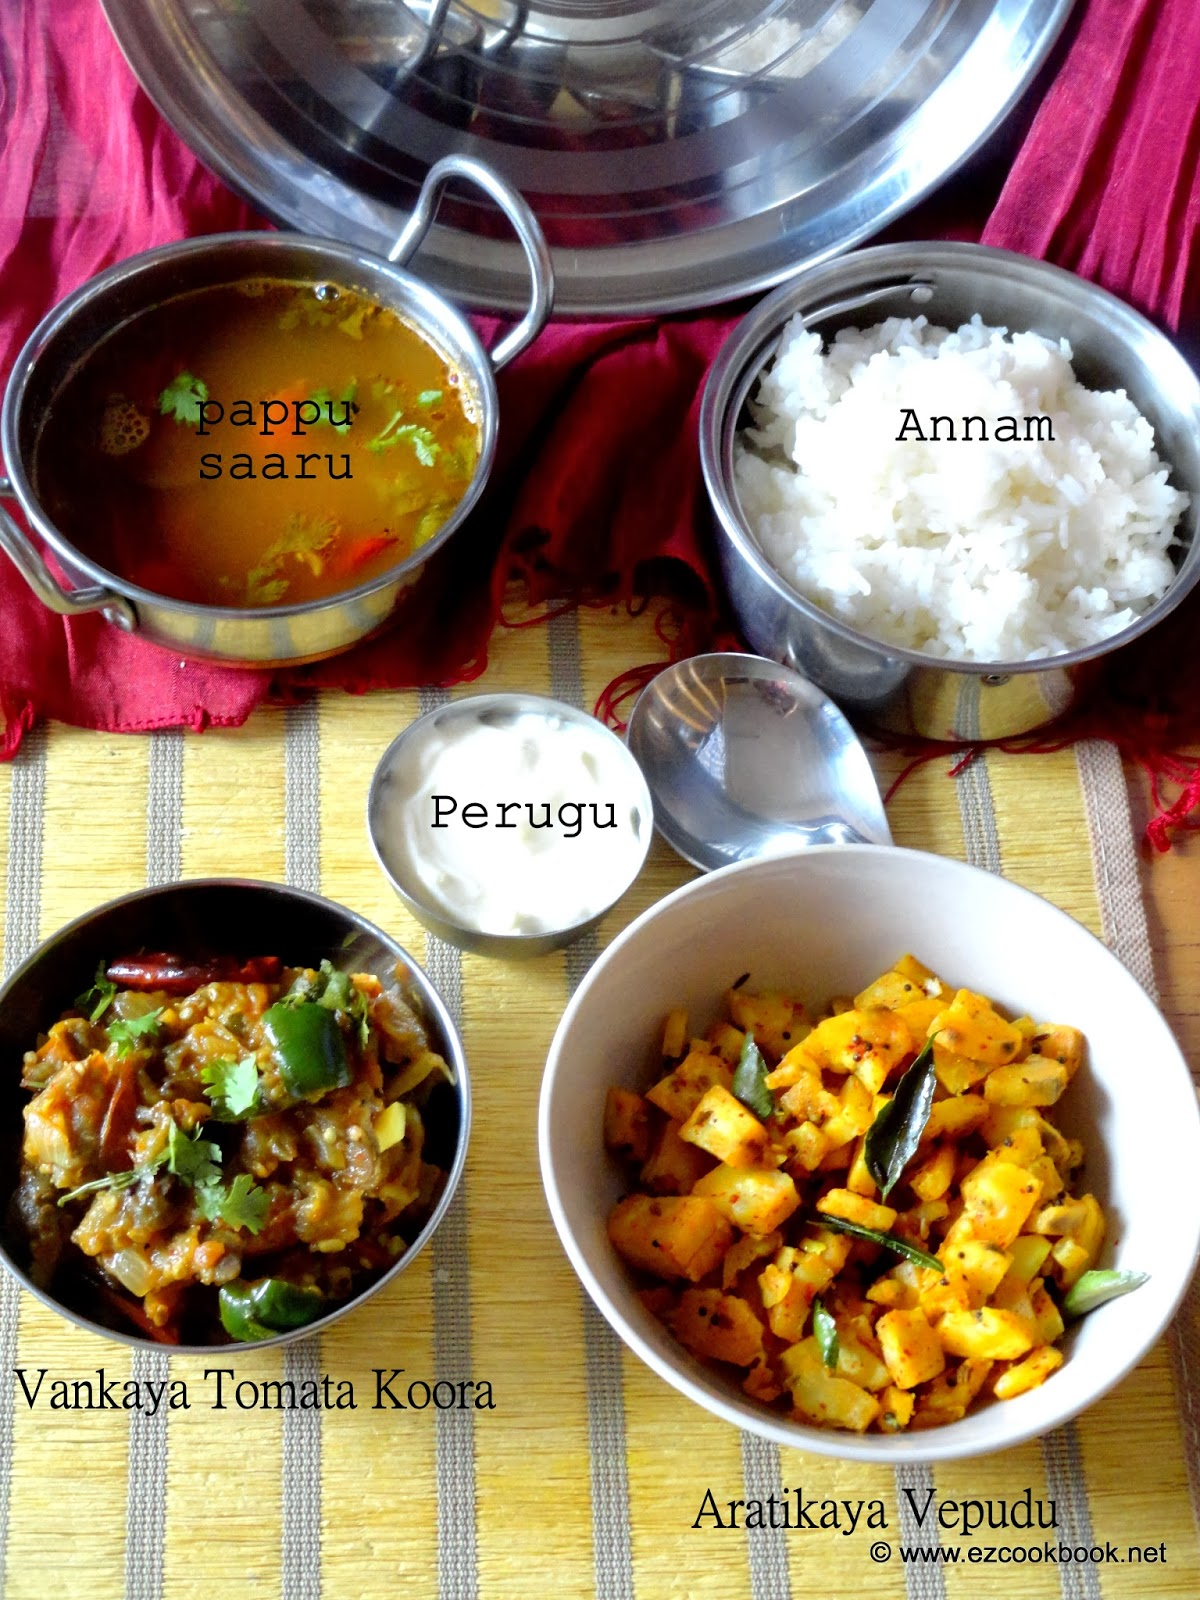 Simple home style telugu lunch menu vegetarian meal ezcookbook also helps in fuss free cooking this simple vegetarian lunch is pretty common at my home during weekends though we try many exotic recipes outside forumfinder Images